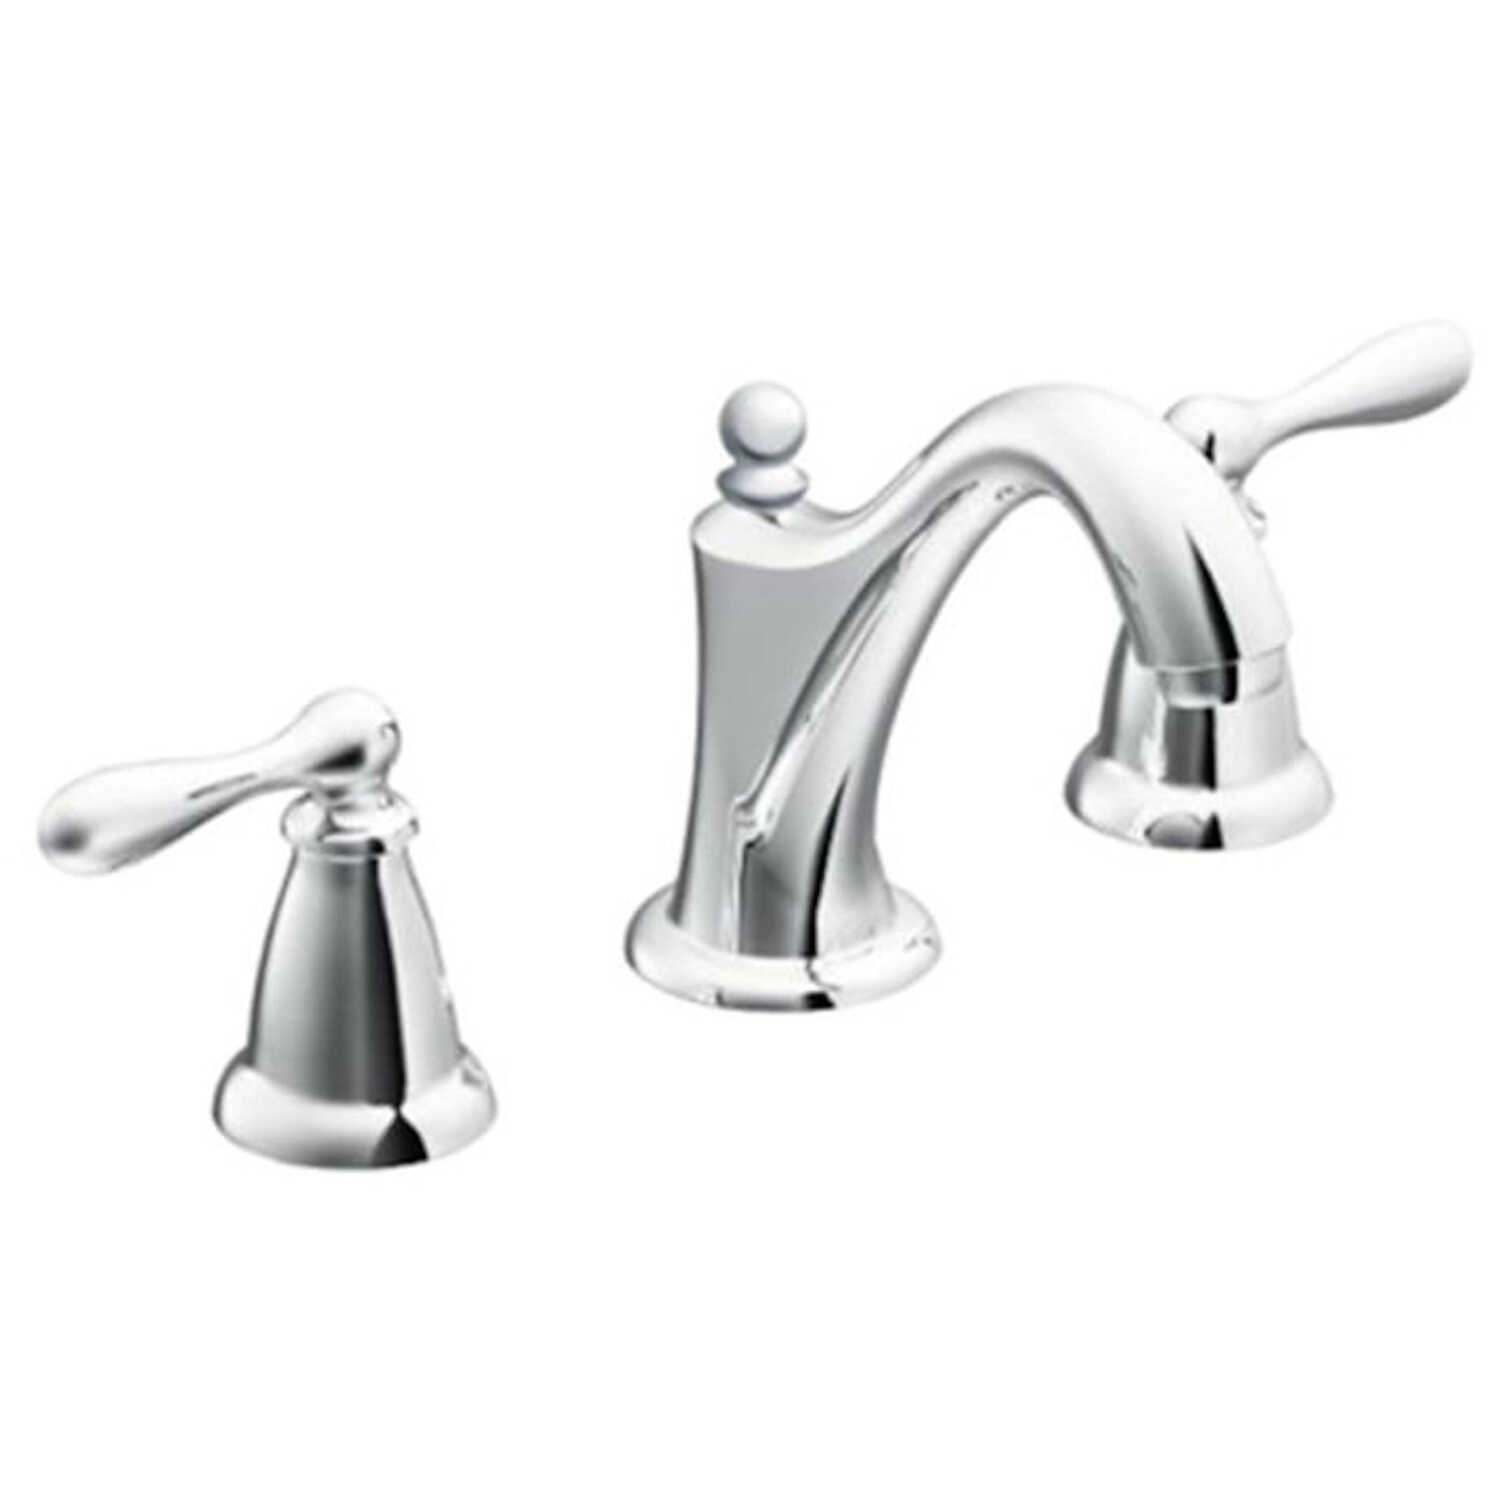 Moen Caldwell Chrome Two Handle Lavatory Faucet Widespread